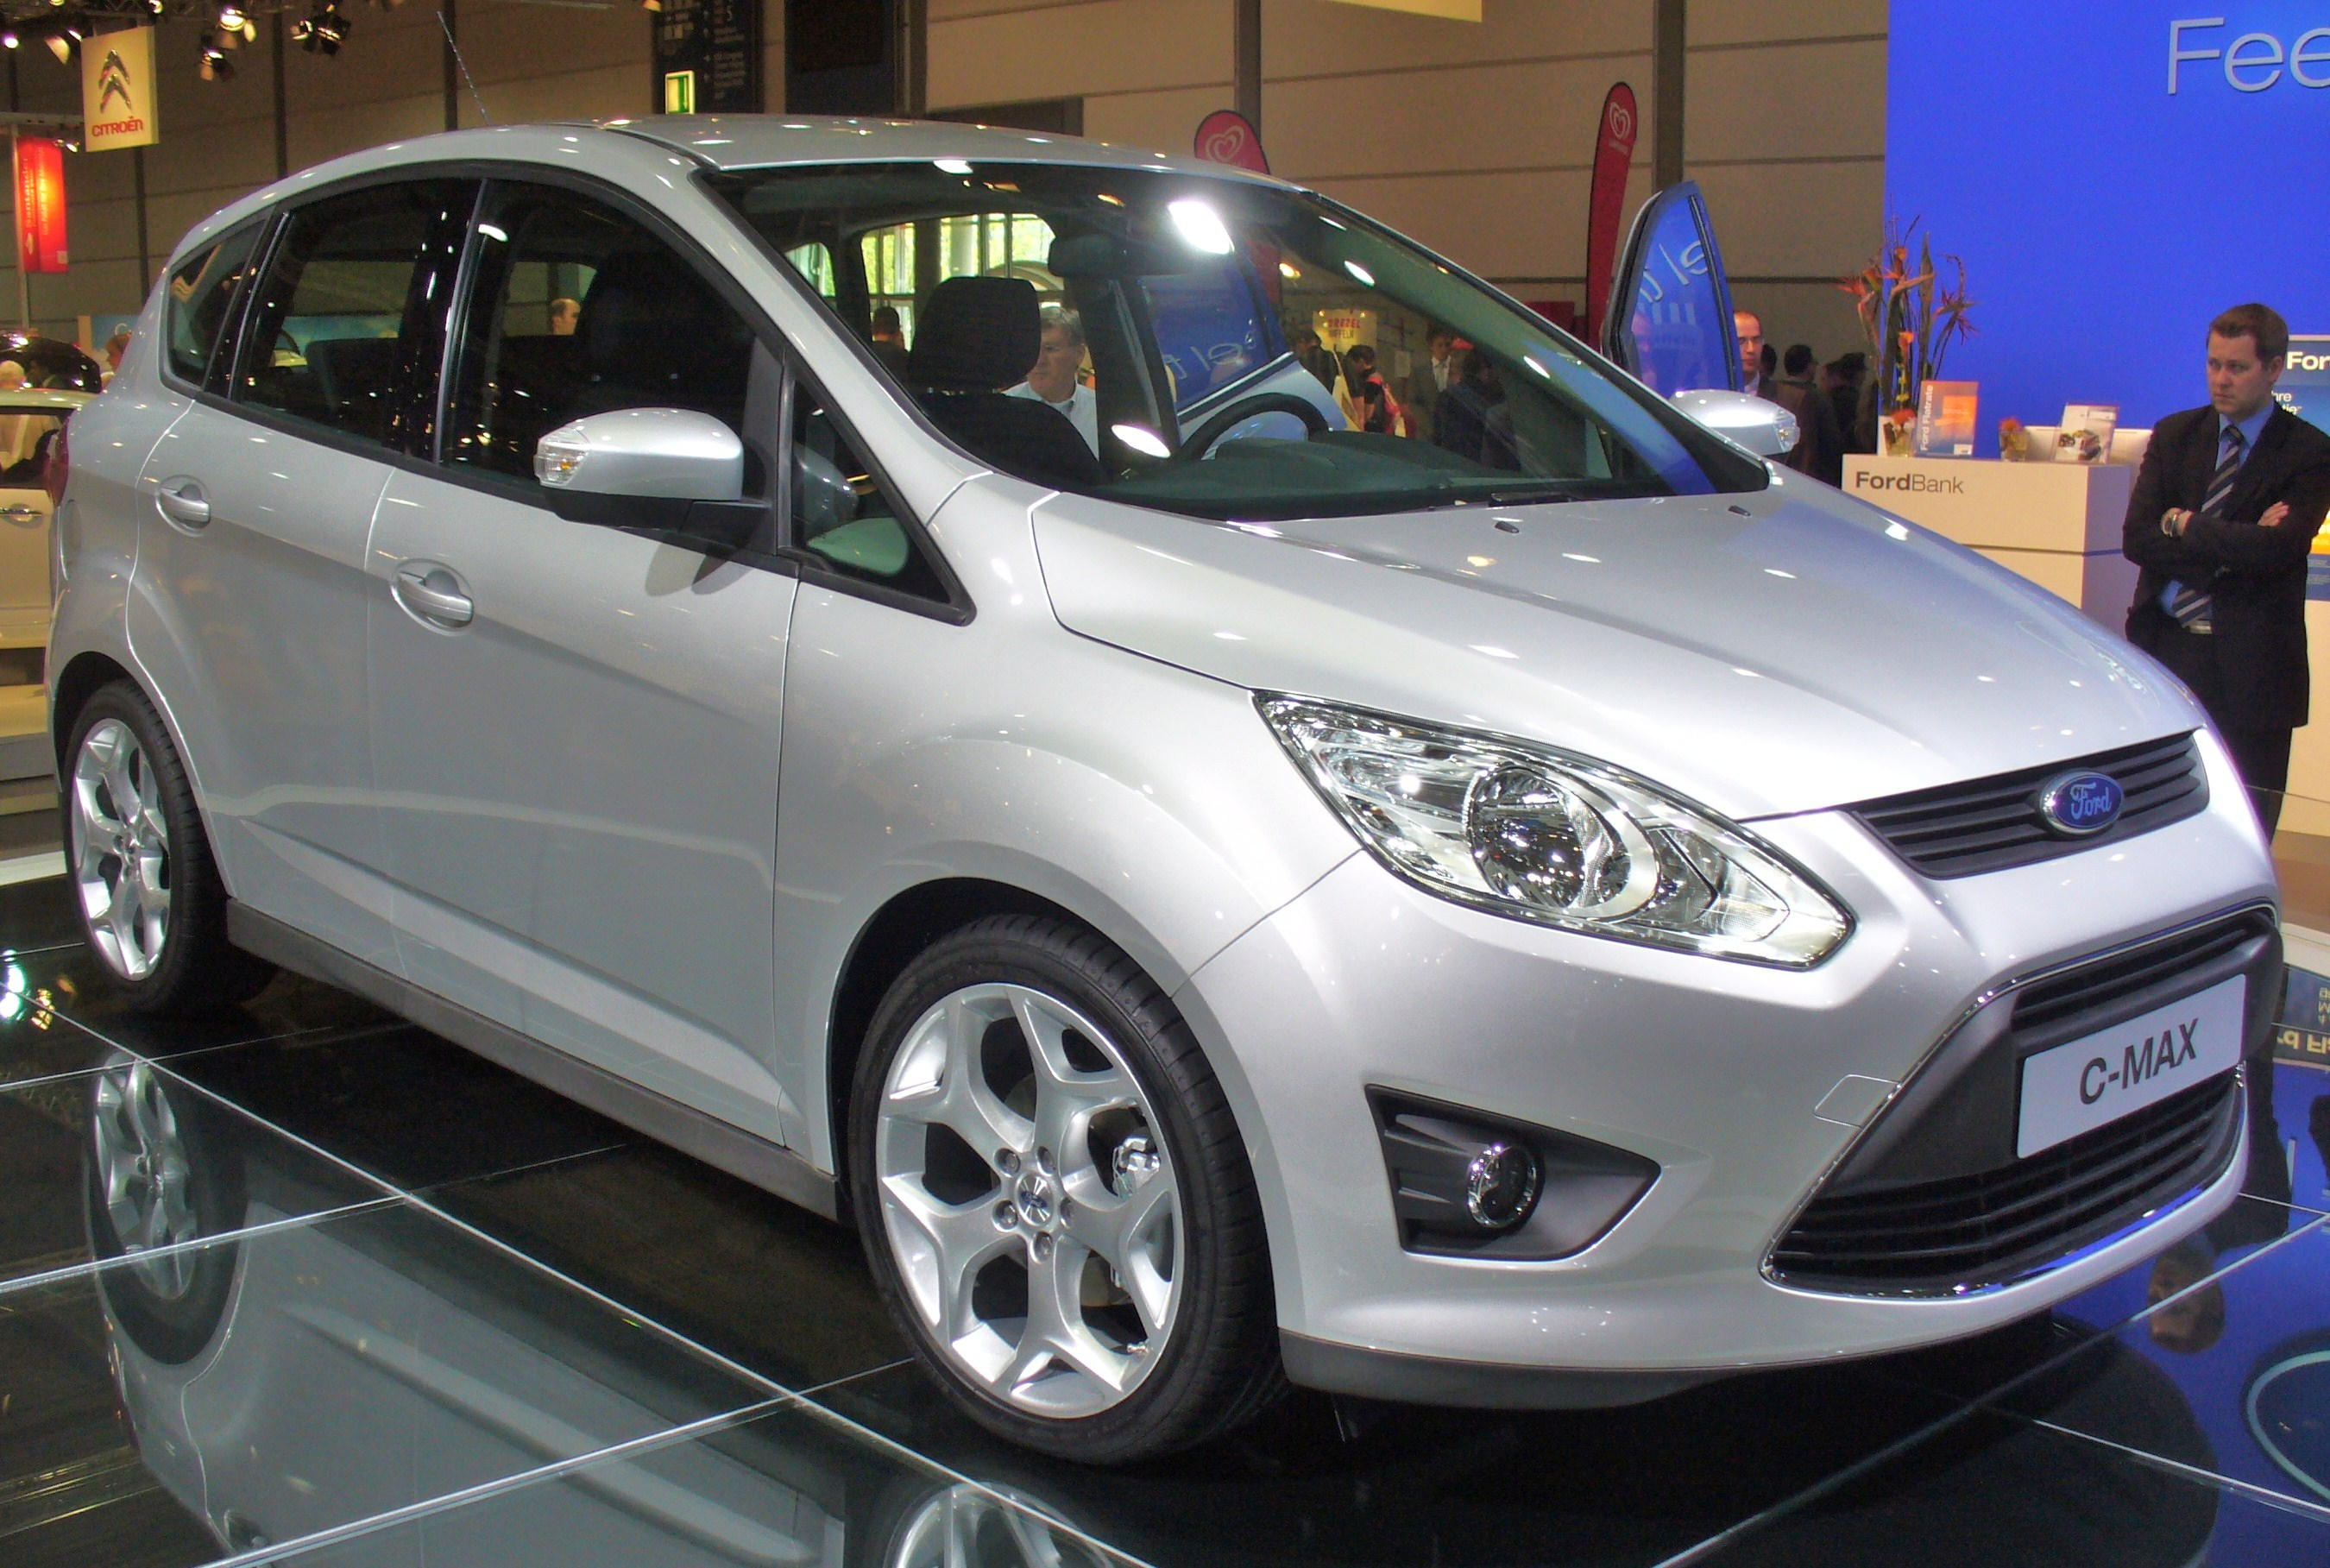 ford c-max images #2